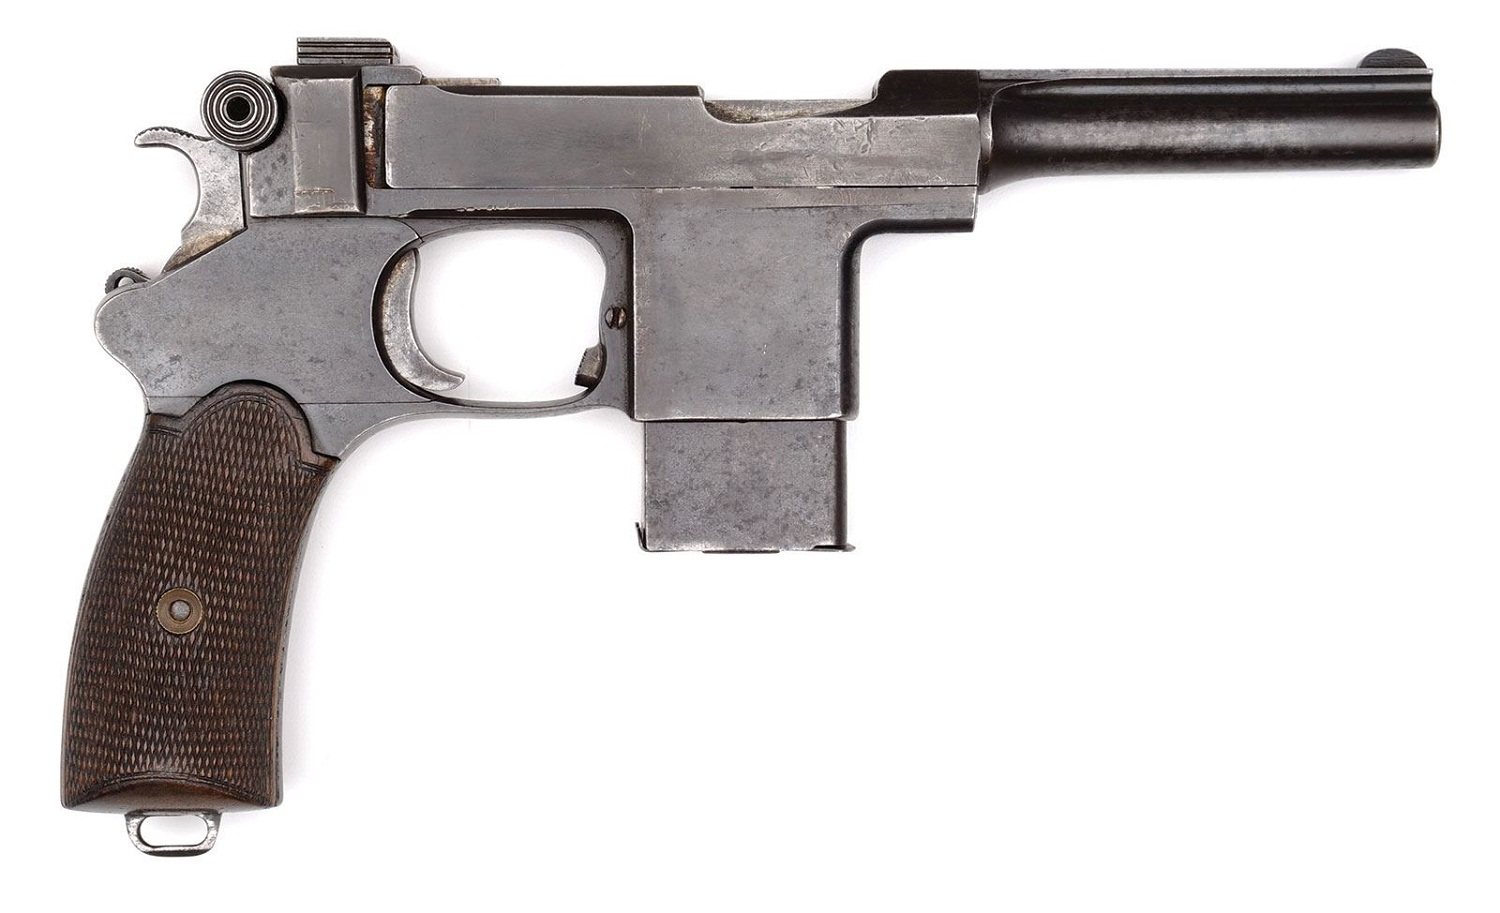 The Bergmann Mars Model 1903 pistol